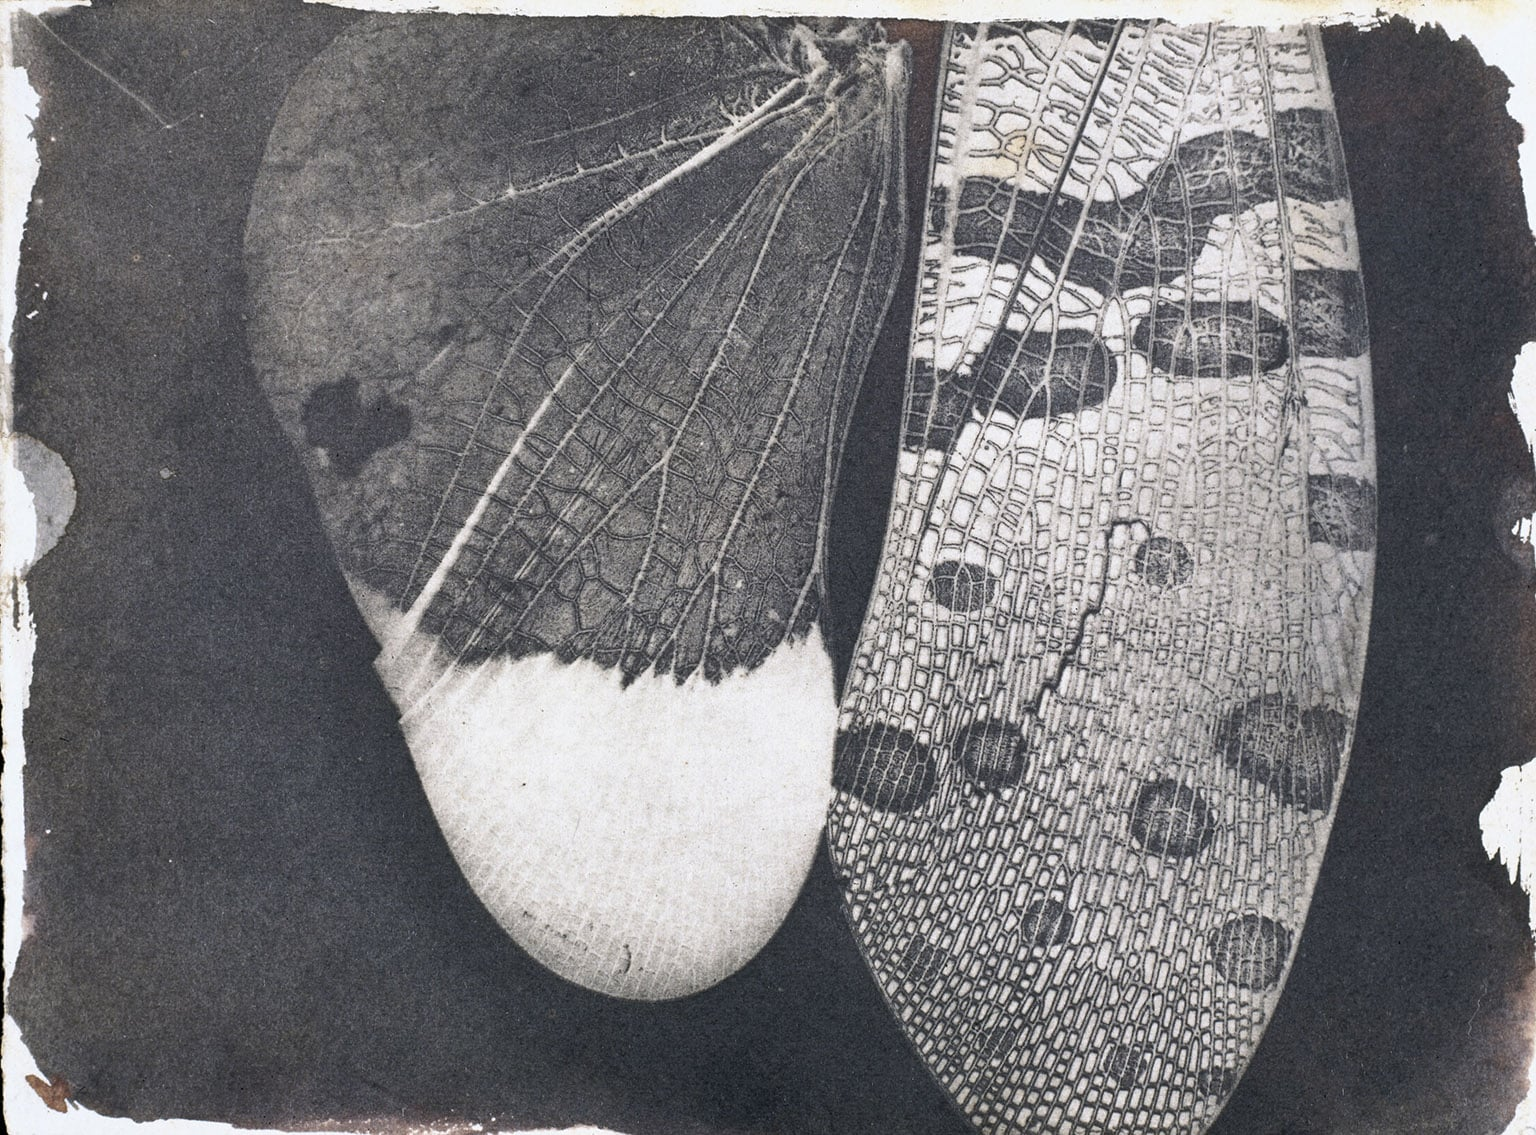 2. William Henry Fox Talbot - Insect wings, c.1840 © National Media Museum